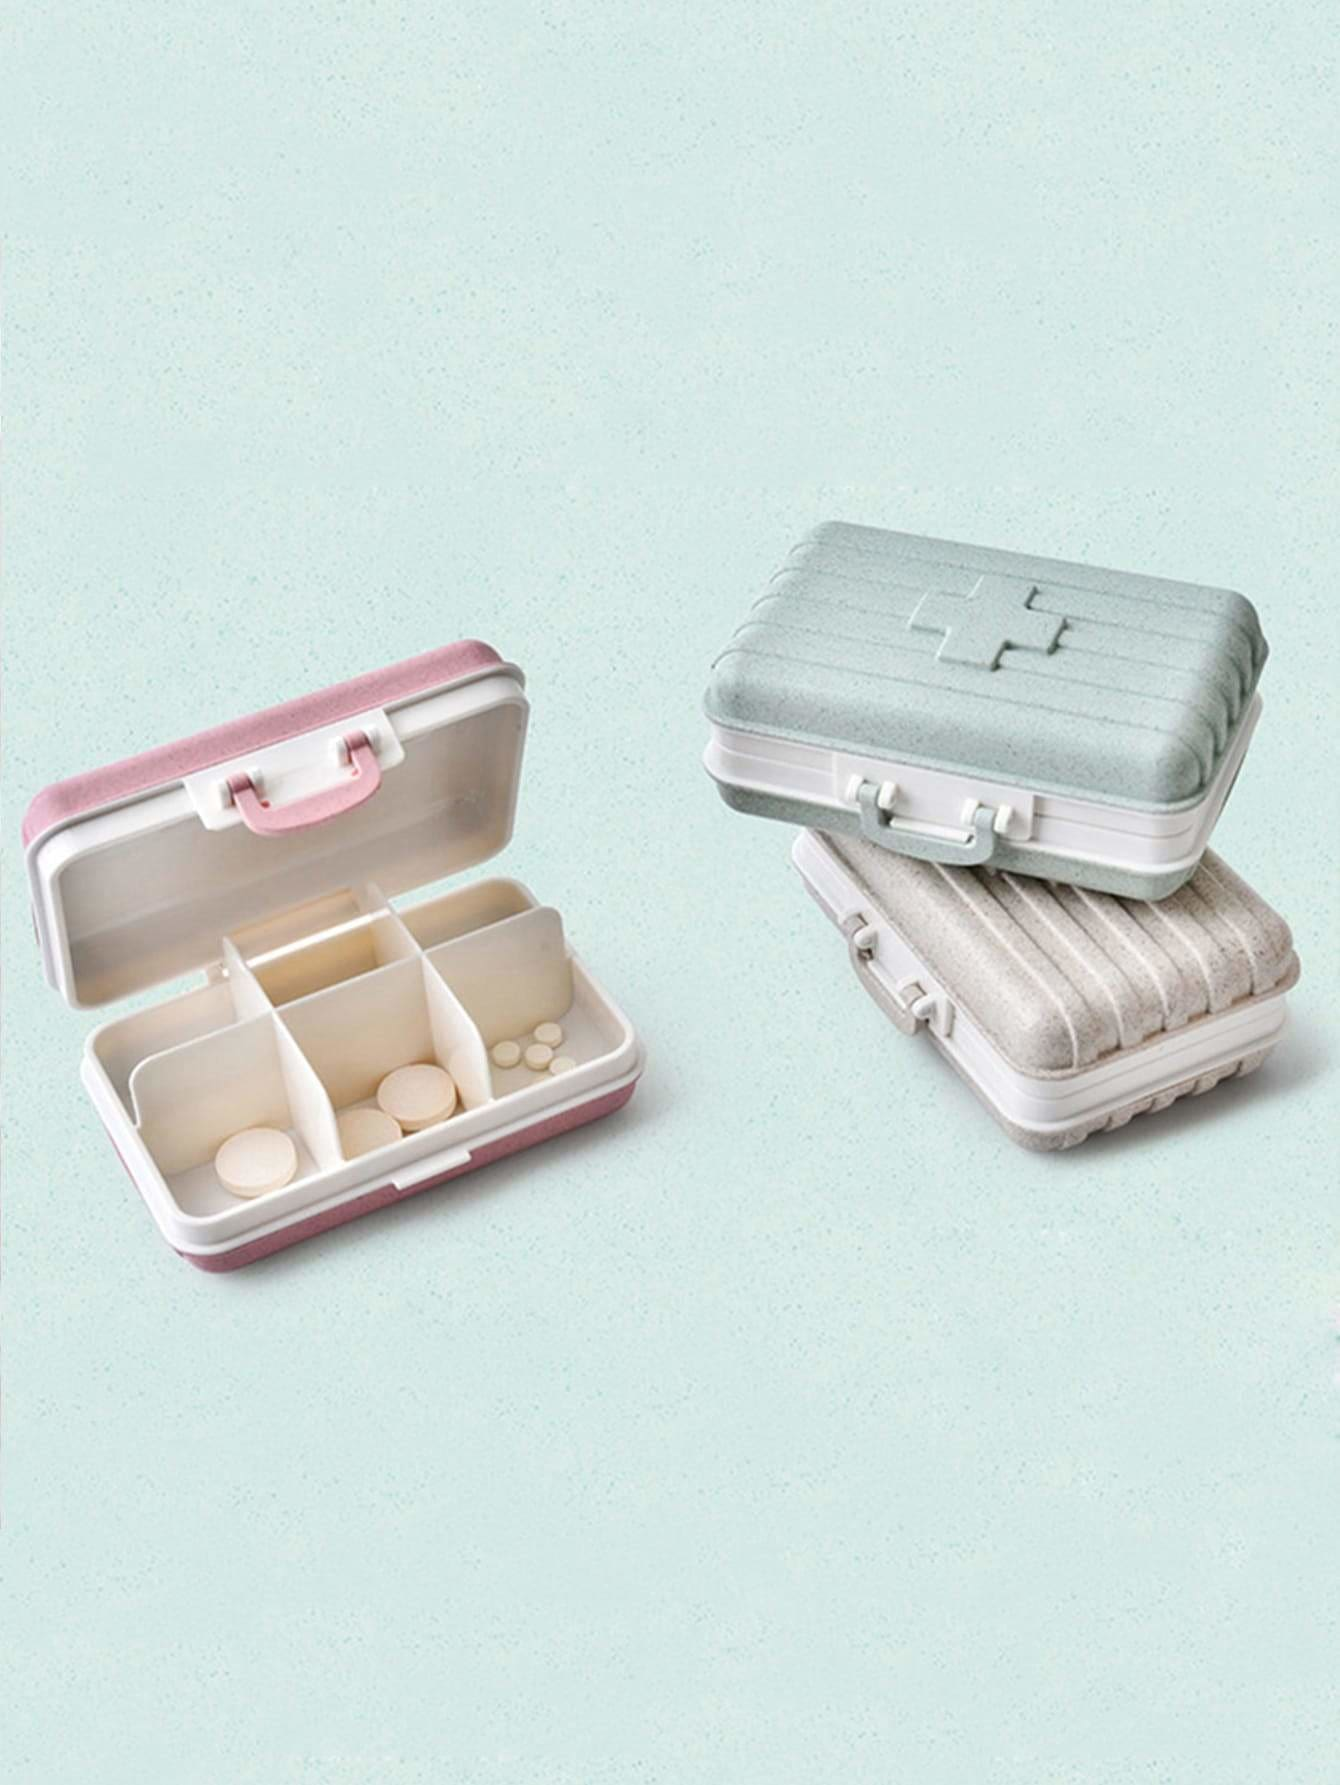 Random Color Medicine Storage Box 1pc - Storage & Organization